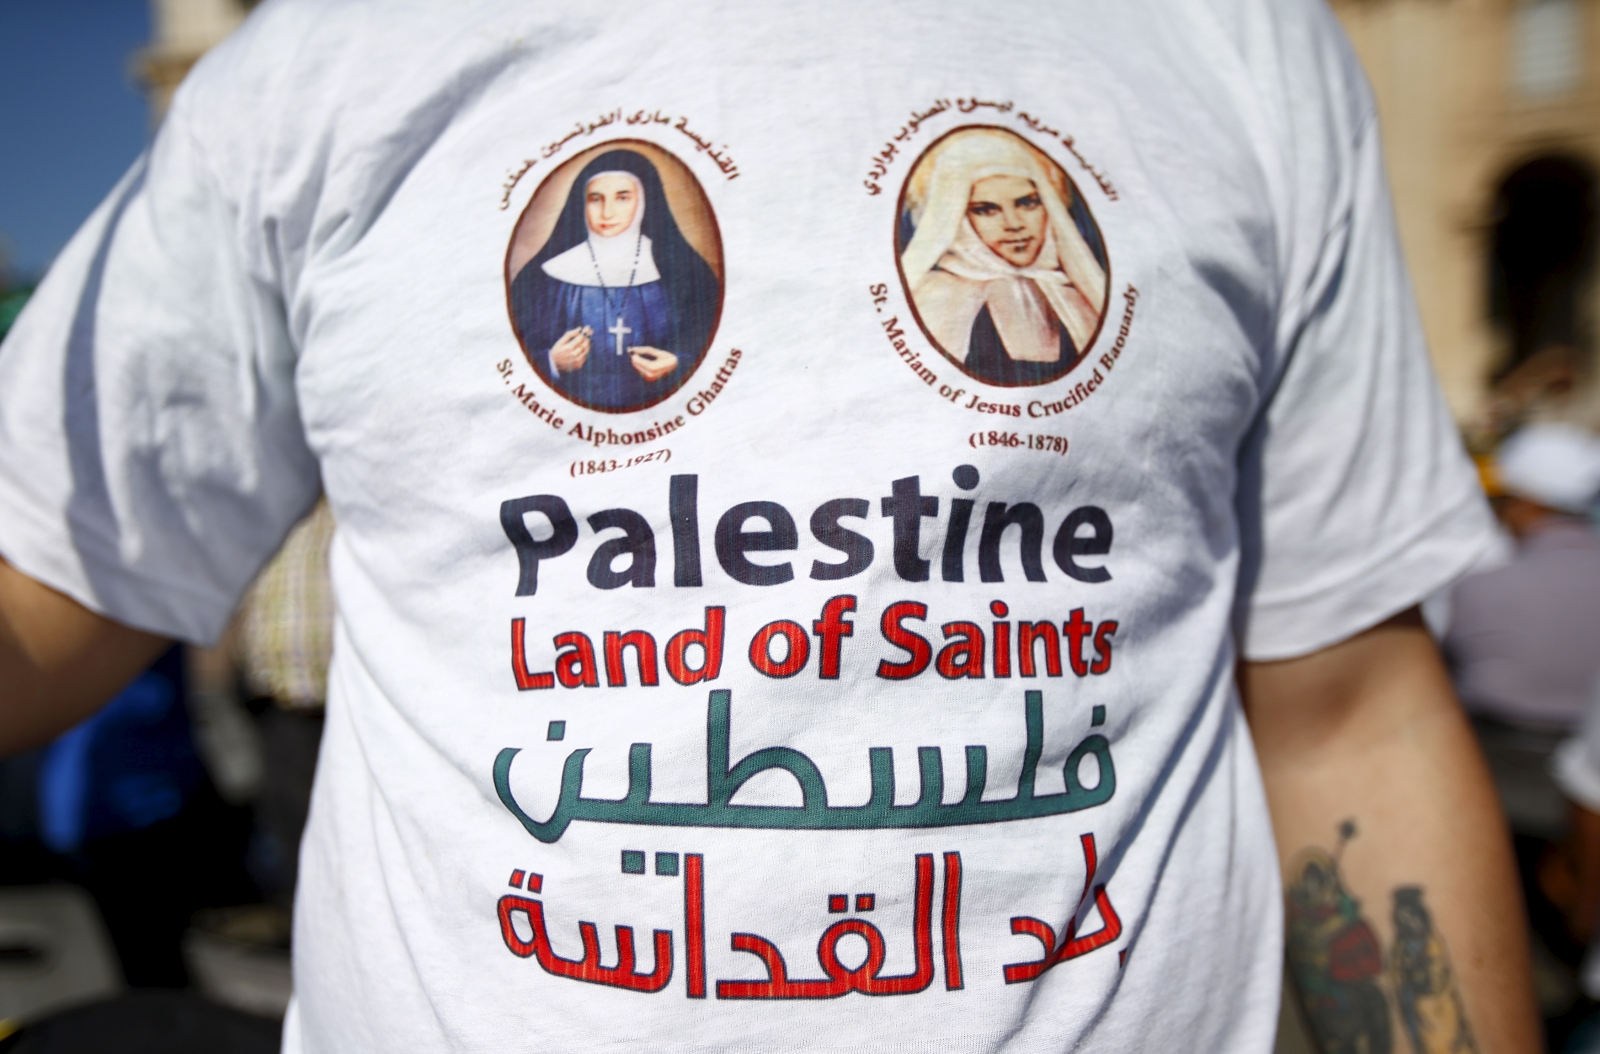 Two Palestinian nuns canonised